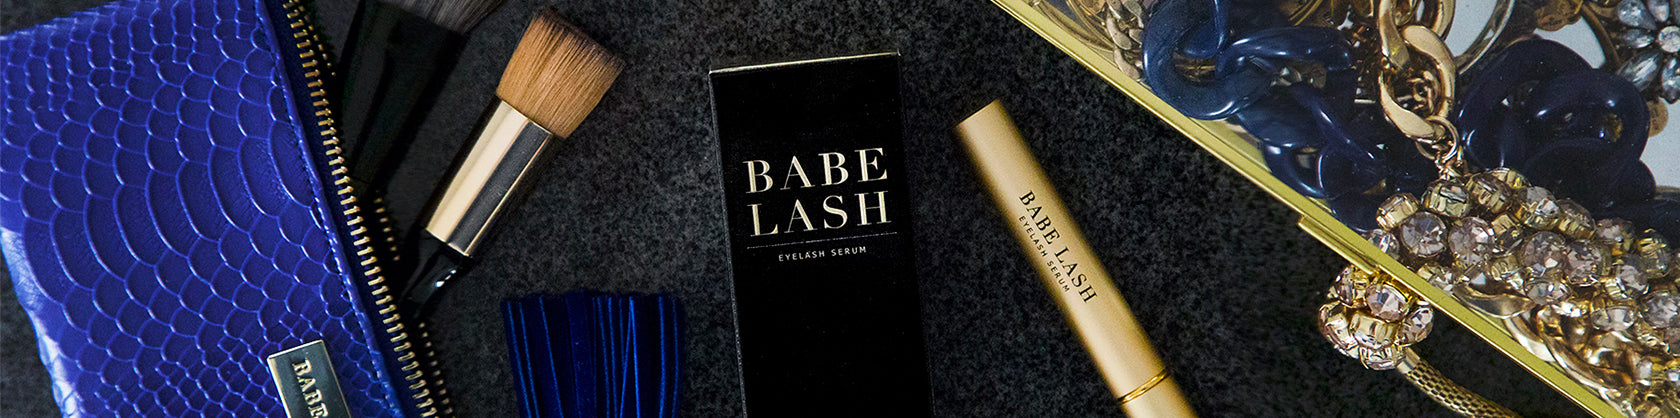 babe lash box and unboxed product on a table of makeup and jewelry